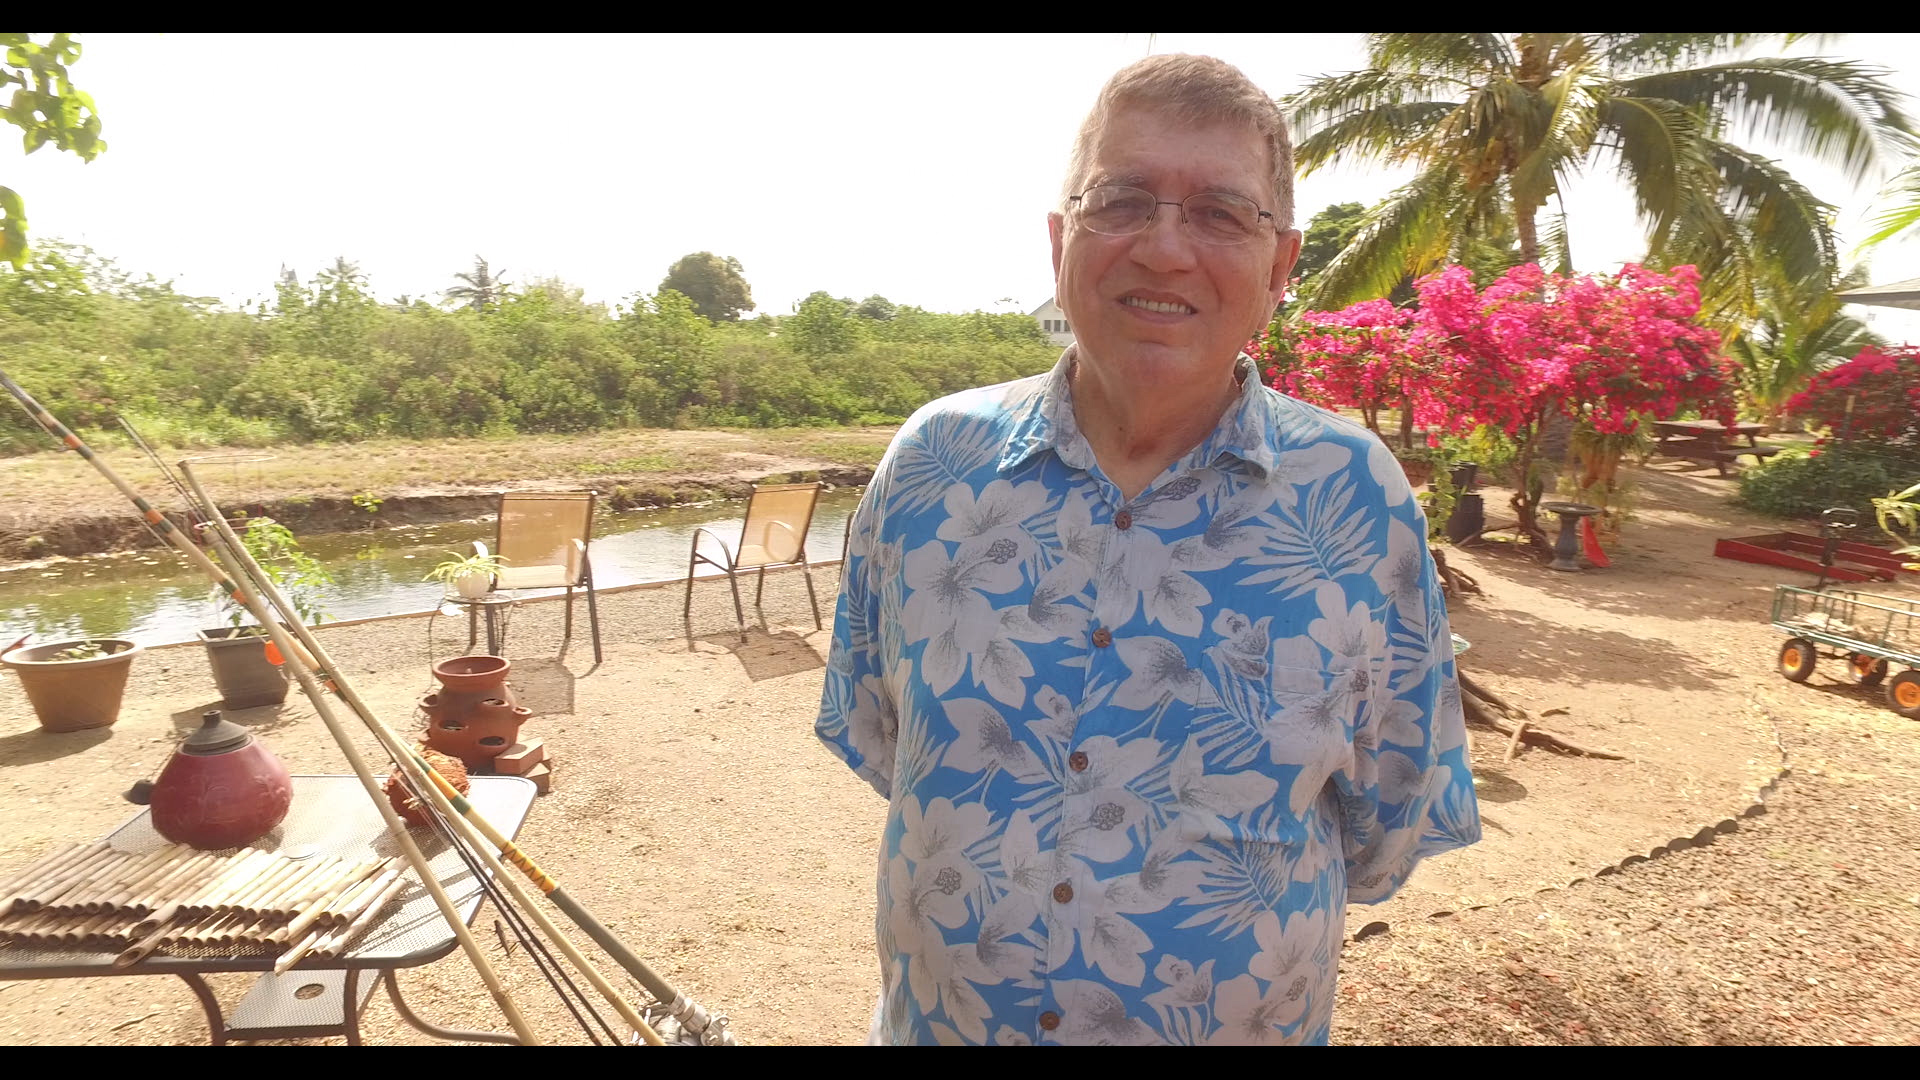 Bob enjoys fishing and woodworking in Hawaii and lives with COPD